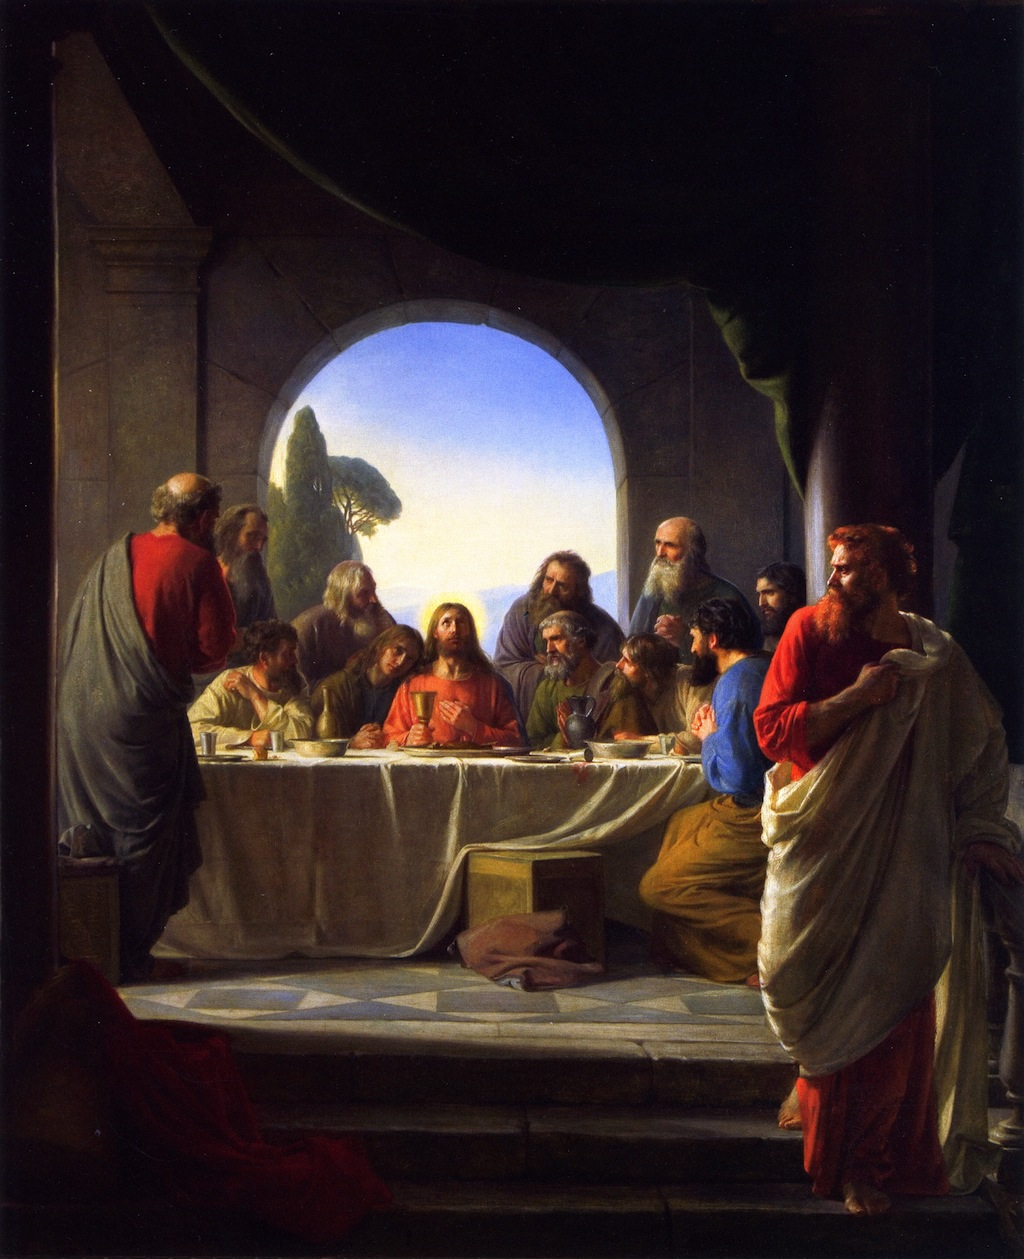 The Last Supper Painting Secrets : supper, painting, secrets, Judas, Iscariot, Wikipedia